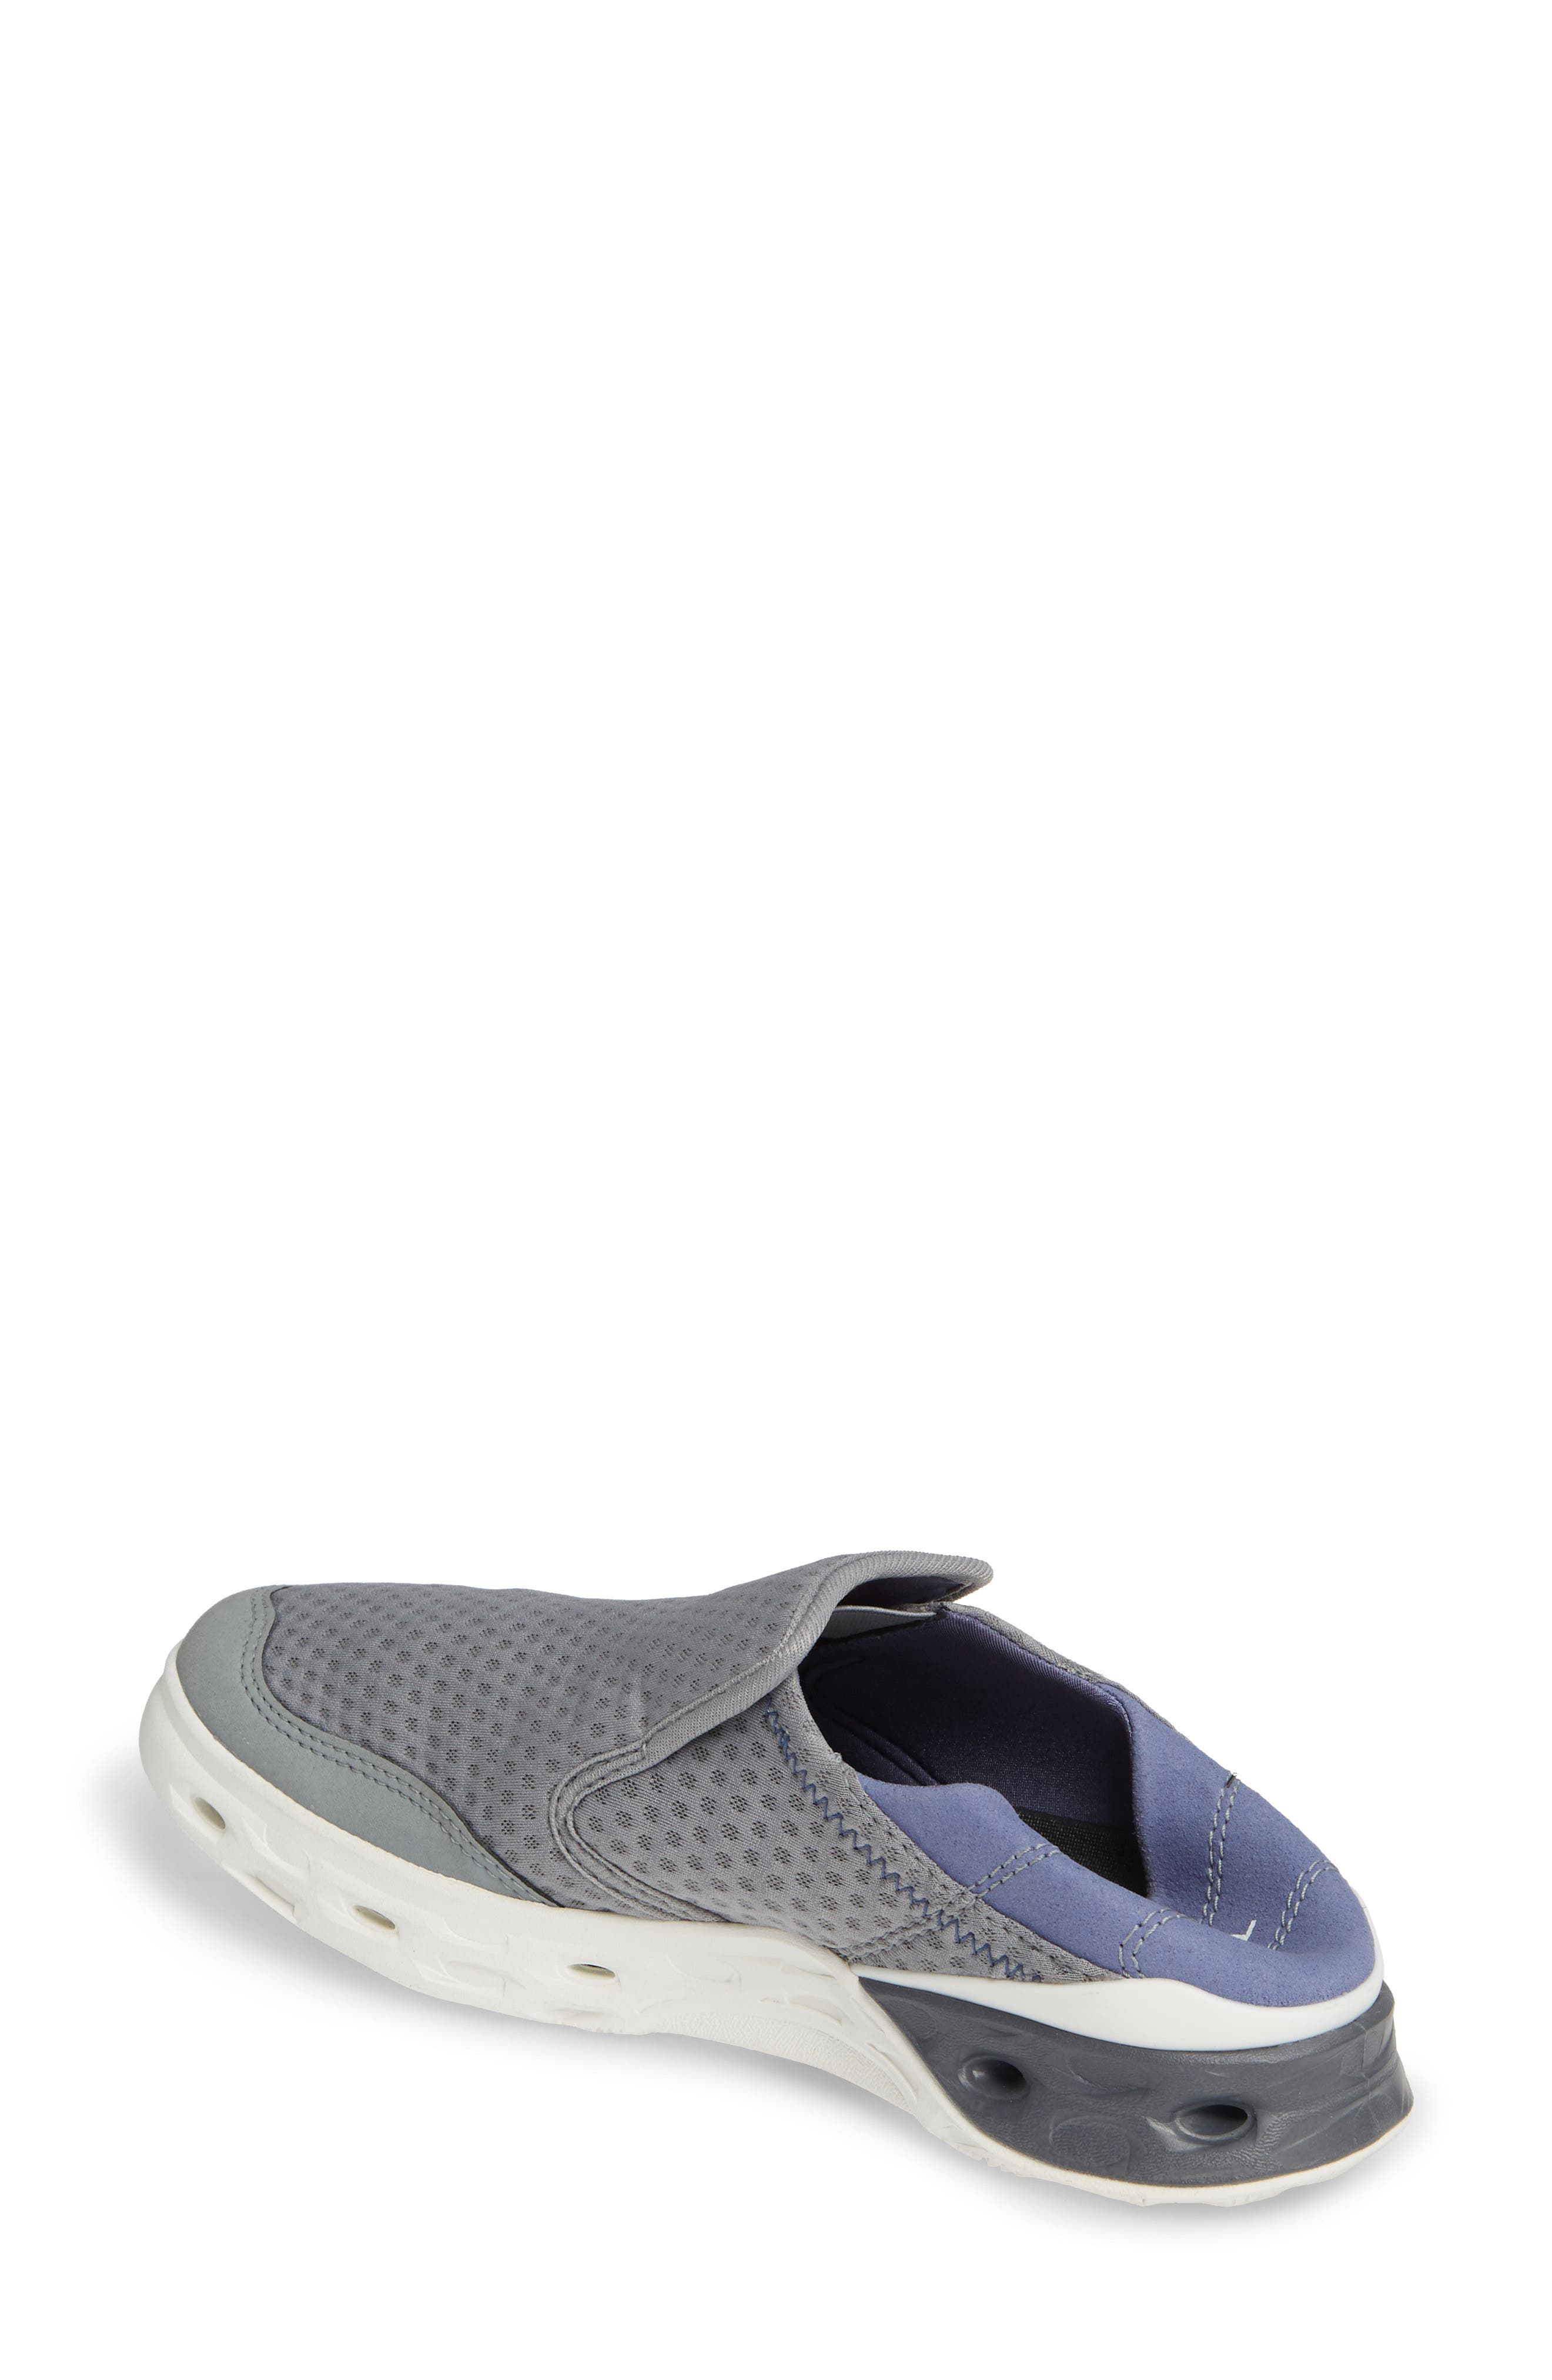 ,                             Tideriser Moc Convertible Water Friendly Boating Shoe,                             Alternate thumbnail 3, color,                             MONUMENT FABRIC